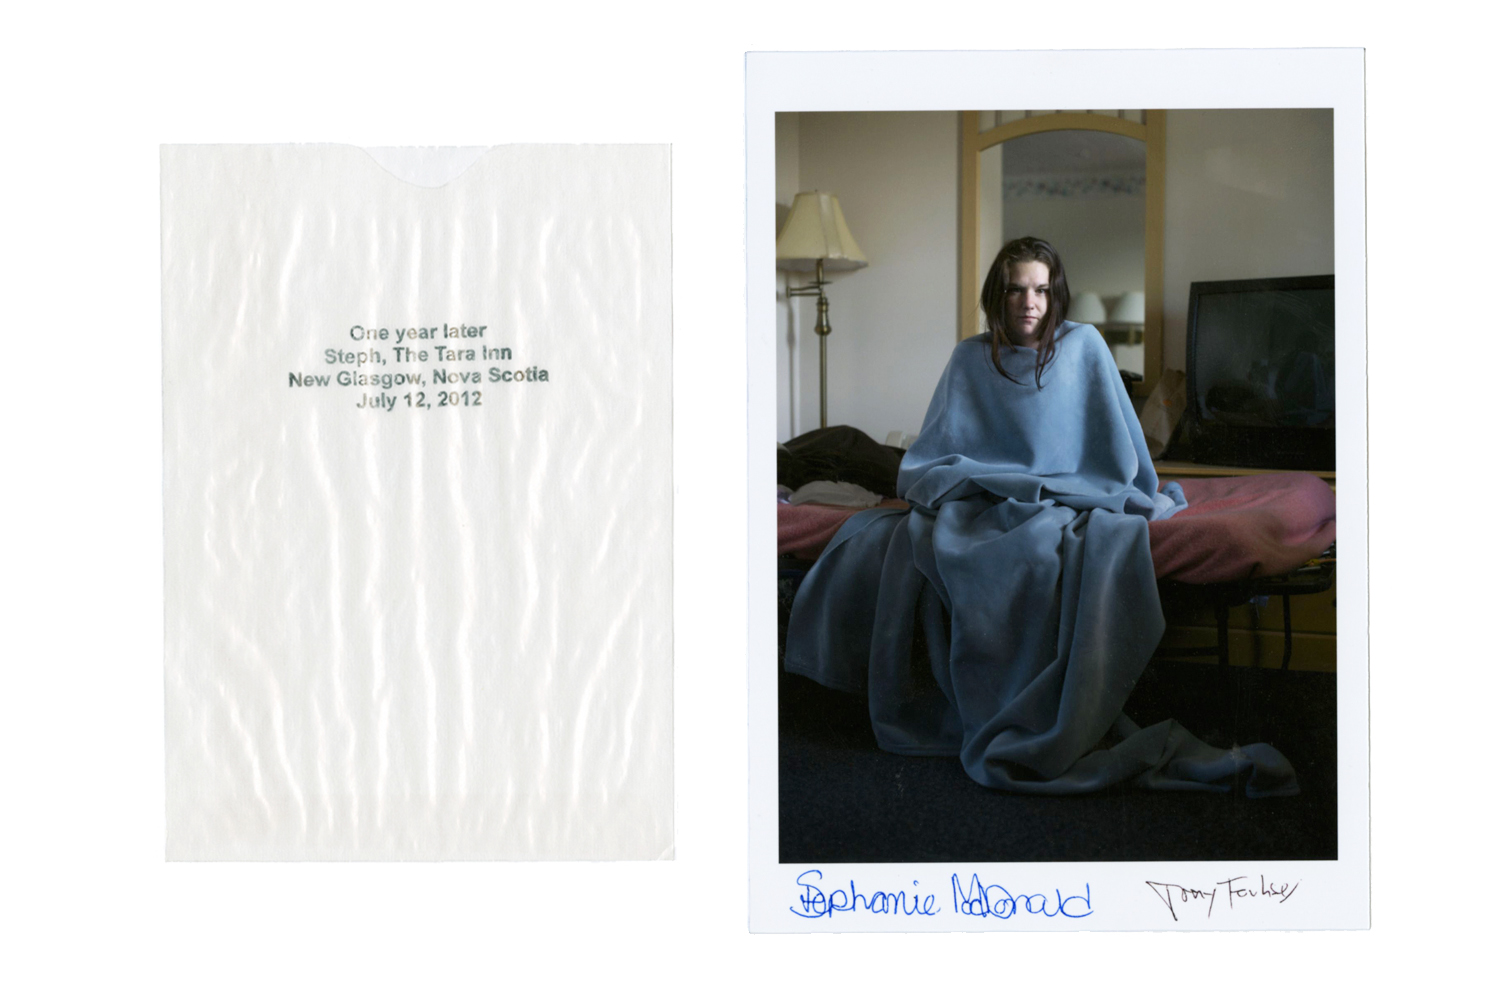 Image of an original print that comes with the book. One year later, Steph,                               The Tata Inn, New Glasgow, July 12, 2012.